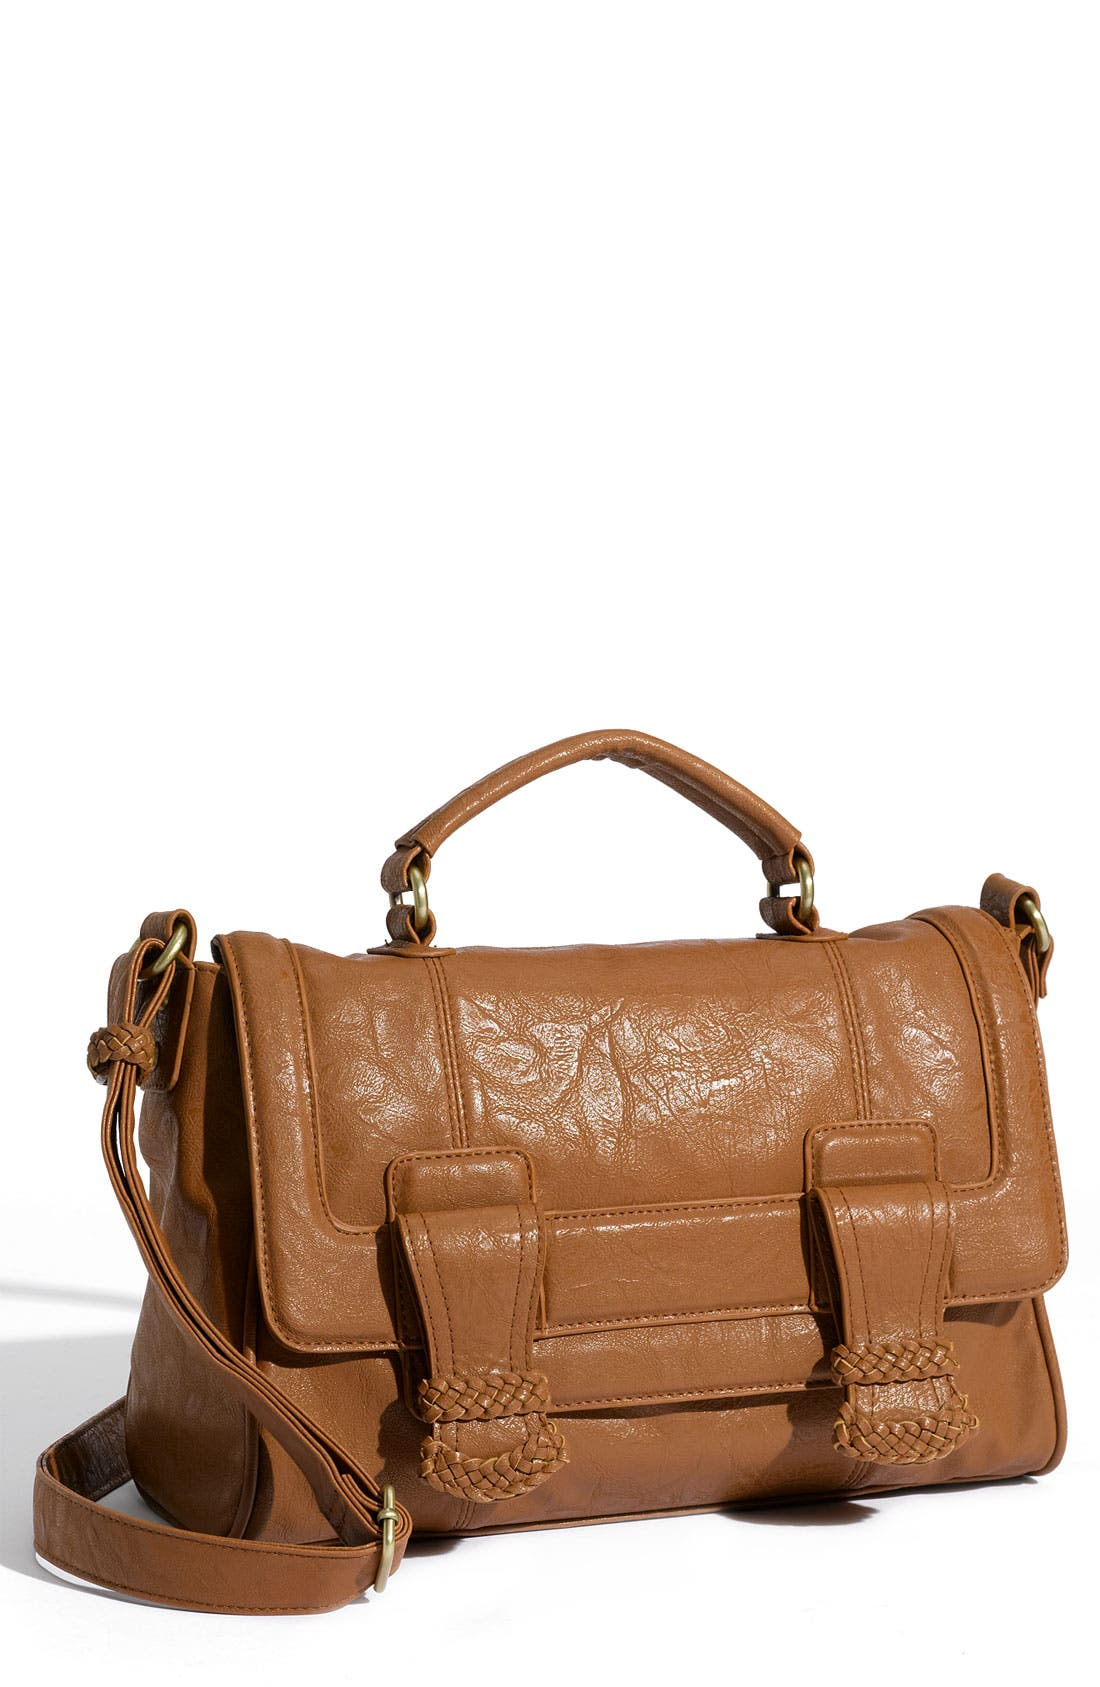 Main Image - Top Choice Crossbody Braid Trim Satchel